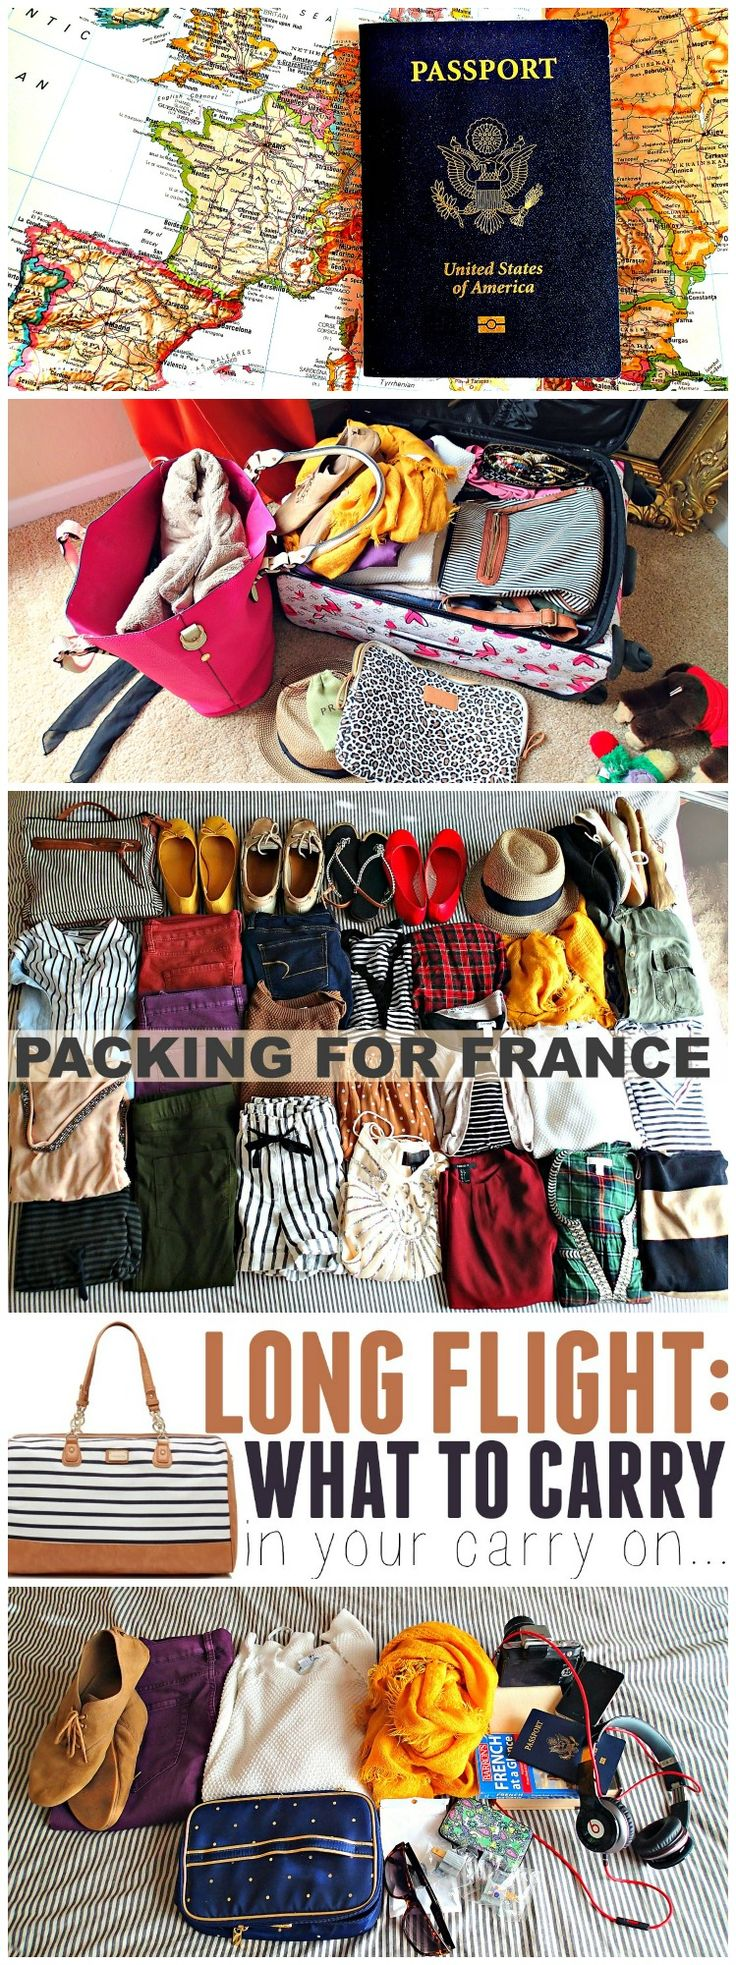 How to Pack for Paris: Make Up, Carry on, & Suitcase! #Travels #Wanderlust #TravelTips